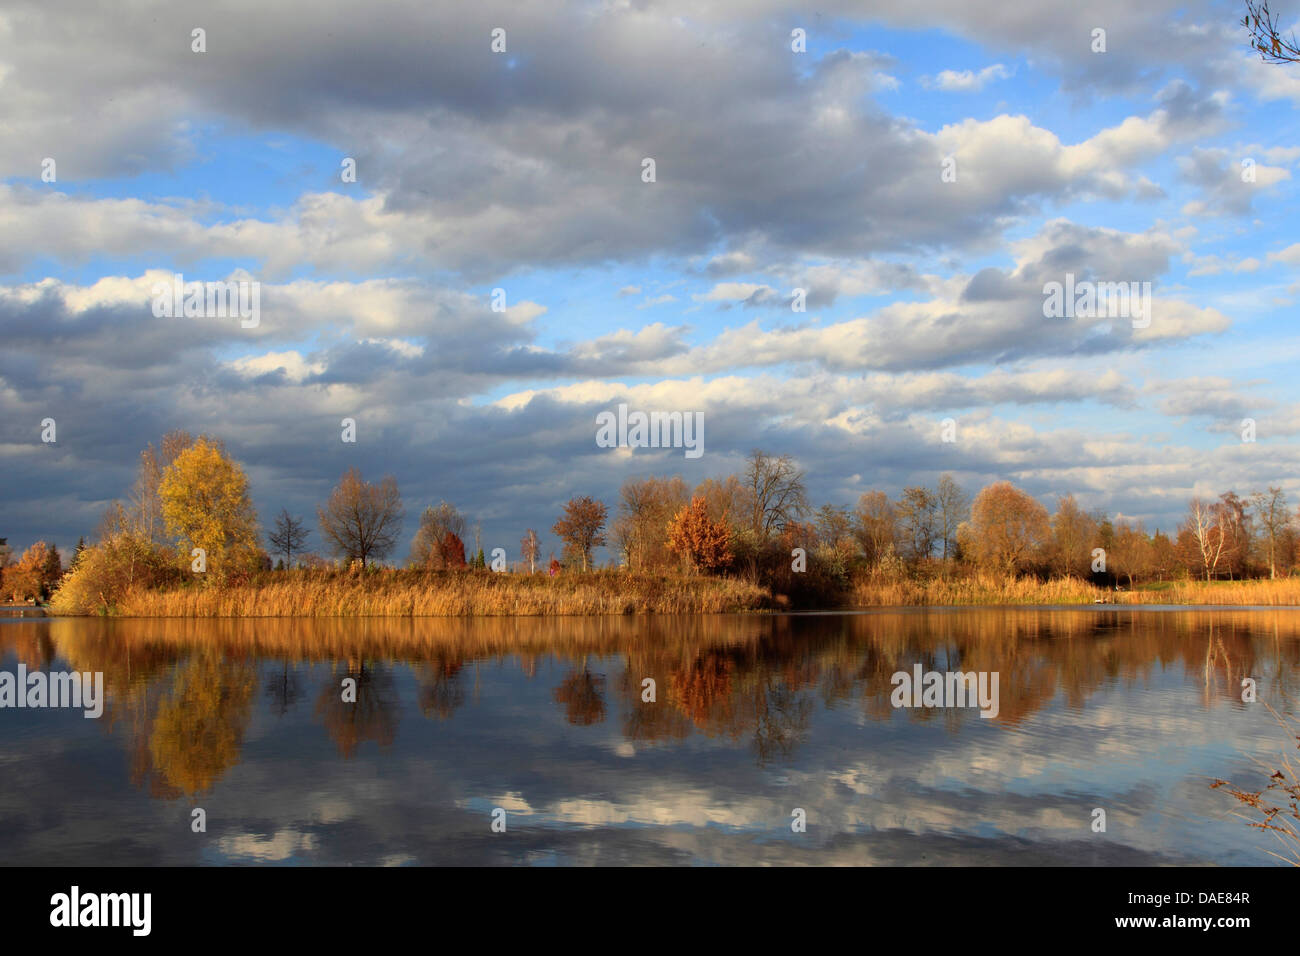 Altrhein oxbow lake in autumn, Germany - Stock Image